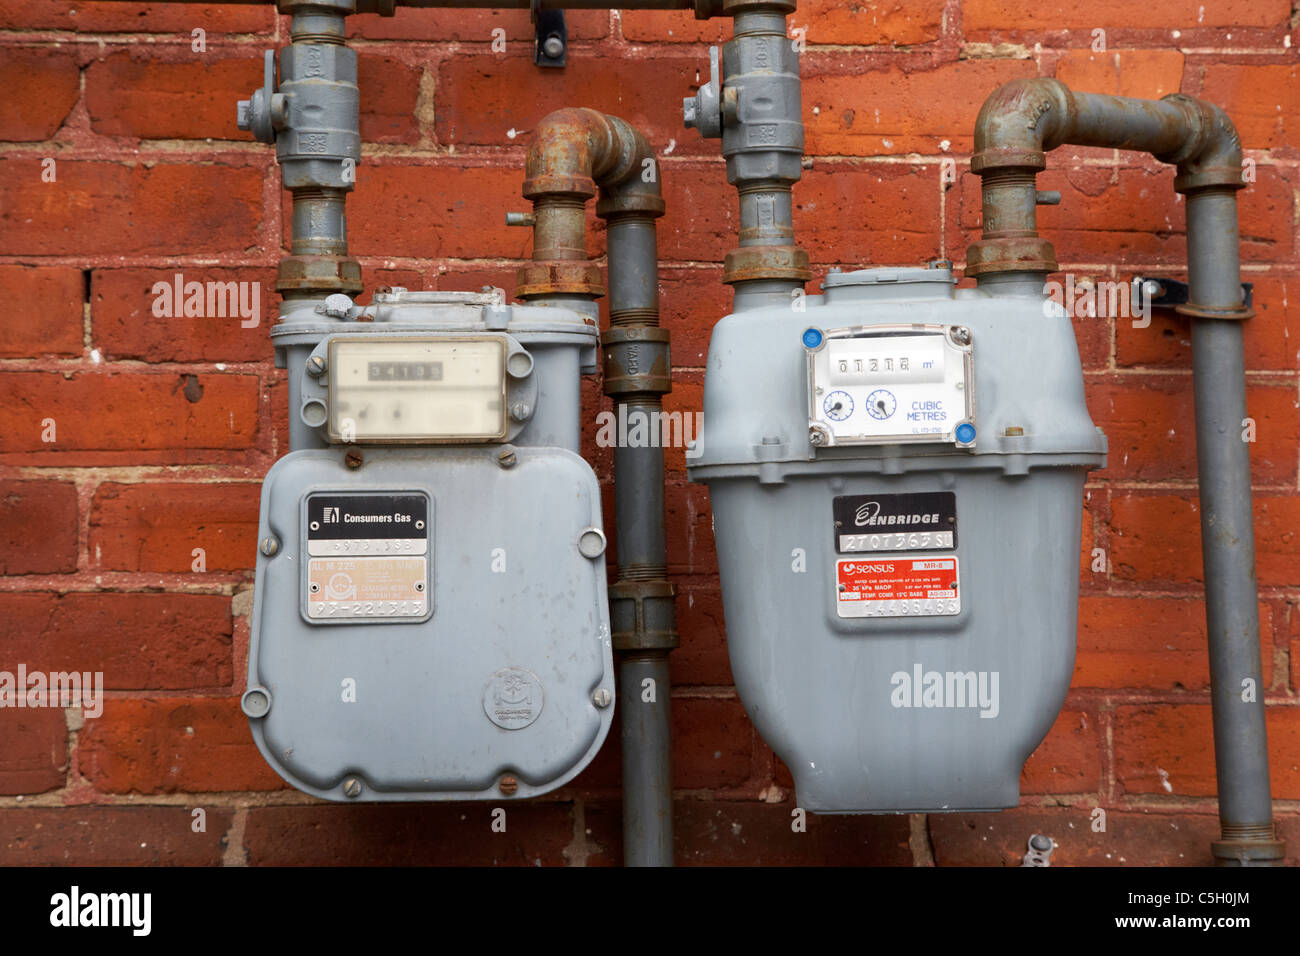 Old Gas Meter Stock Photos Images Alamy Engine Diagram Household Meters On The Outside Wall Of A Split House In Toronto Ontario Canada